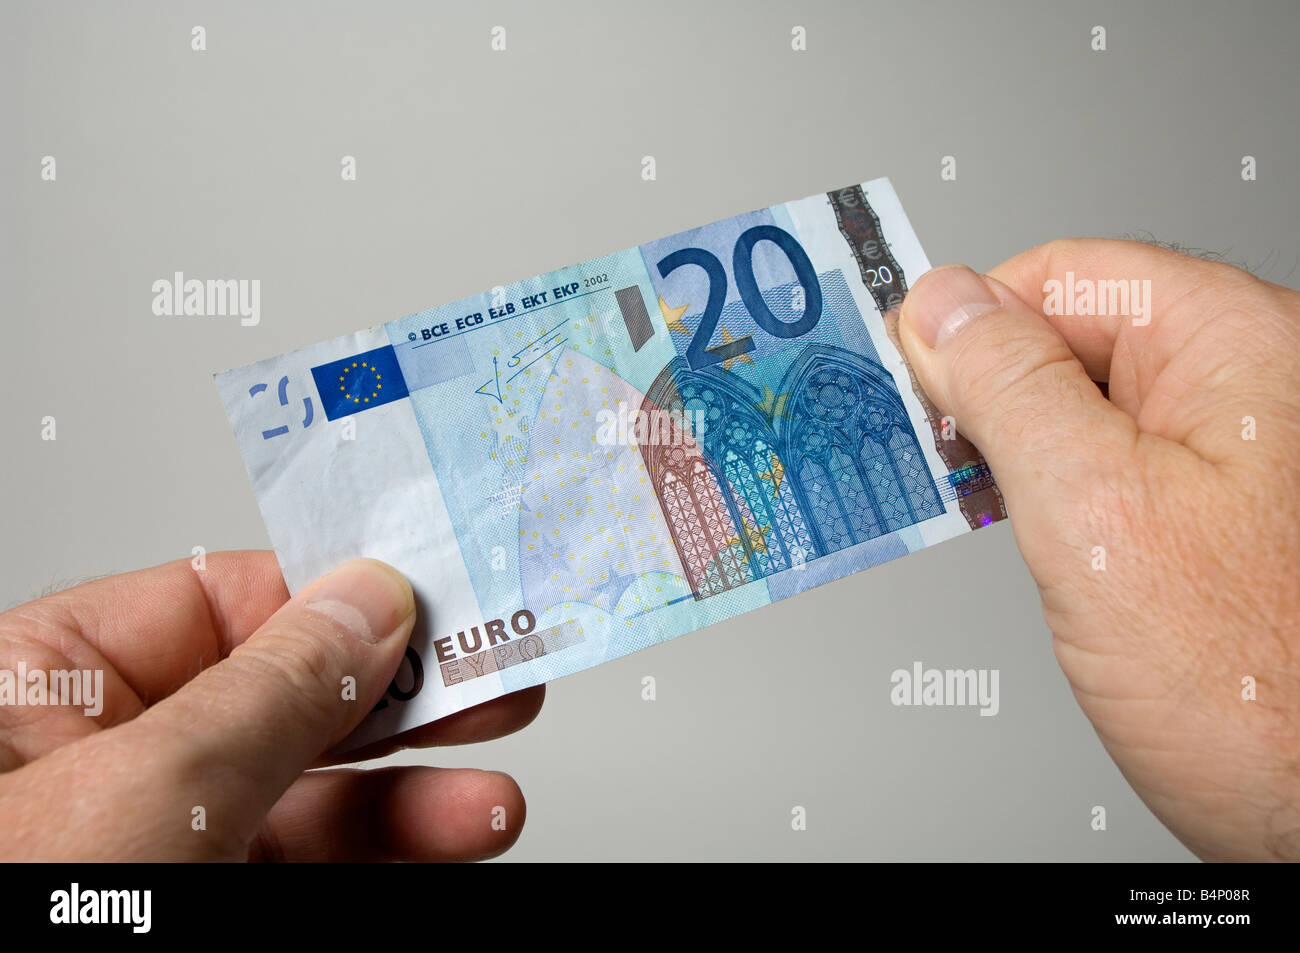 Examining a twenty euro note to check that it is genuine - Stock Image